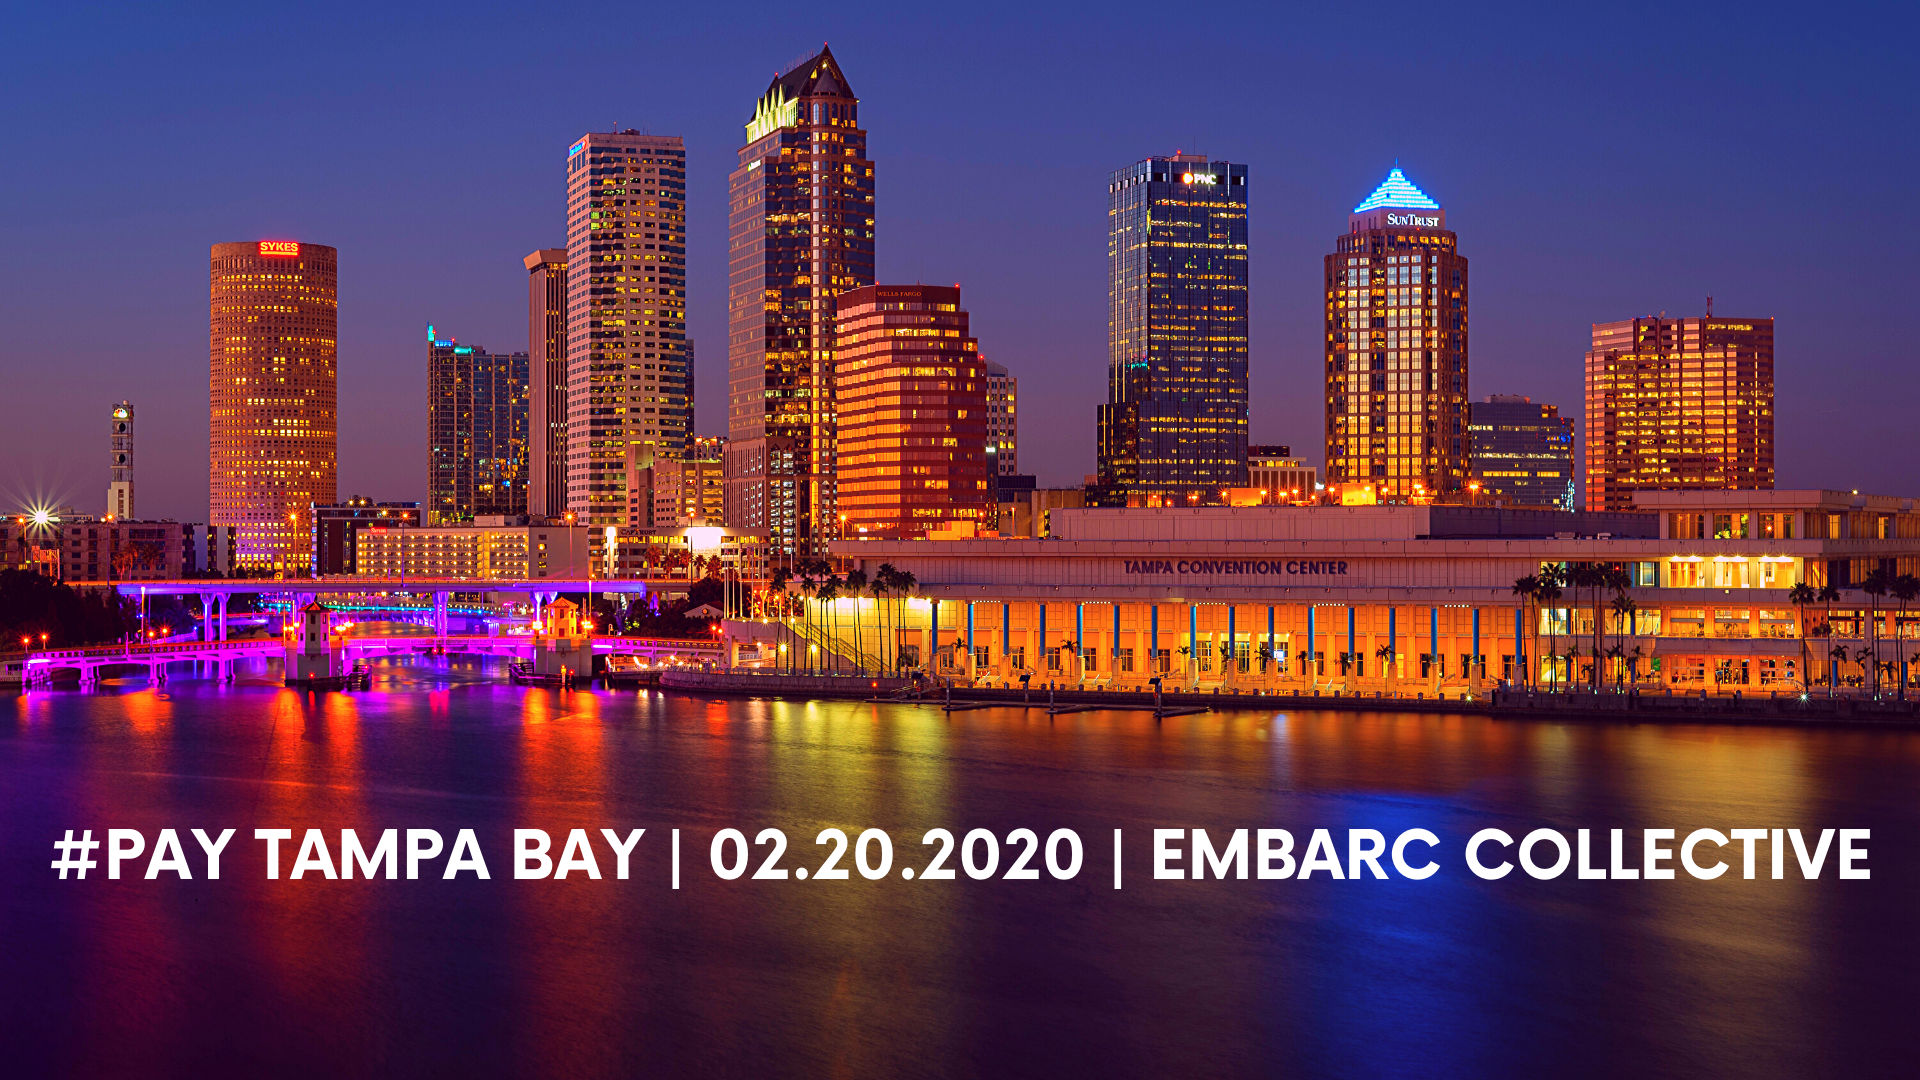 #PAY TAMPA BAY | 02.20.2020 | EMBARC COLLECTIVE